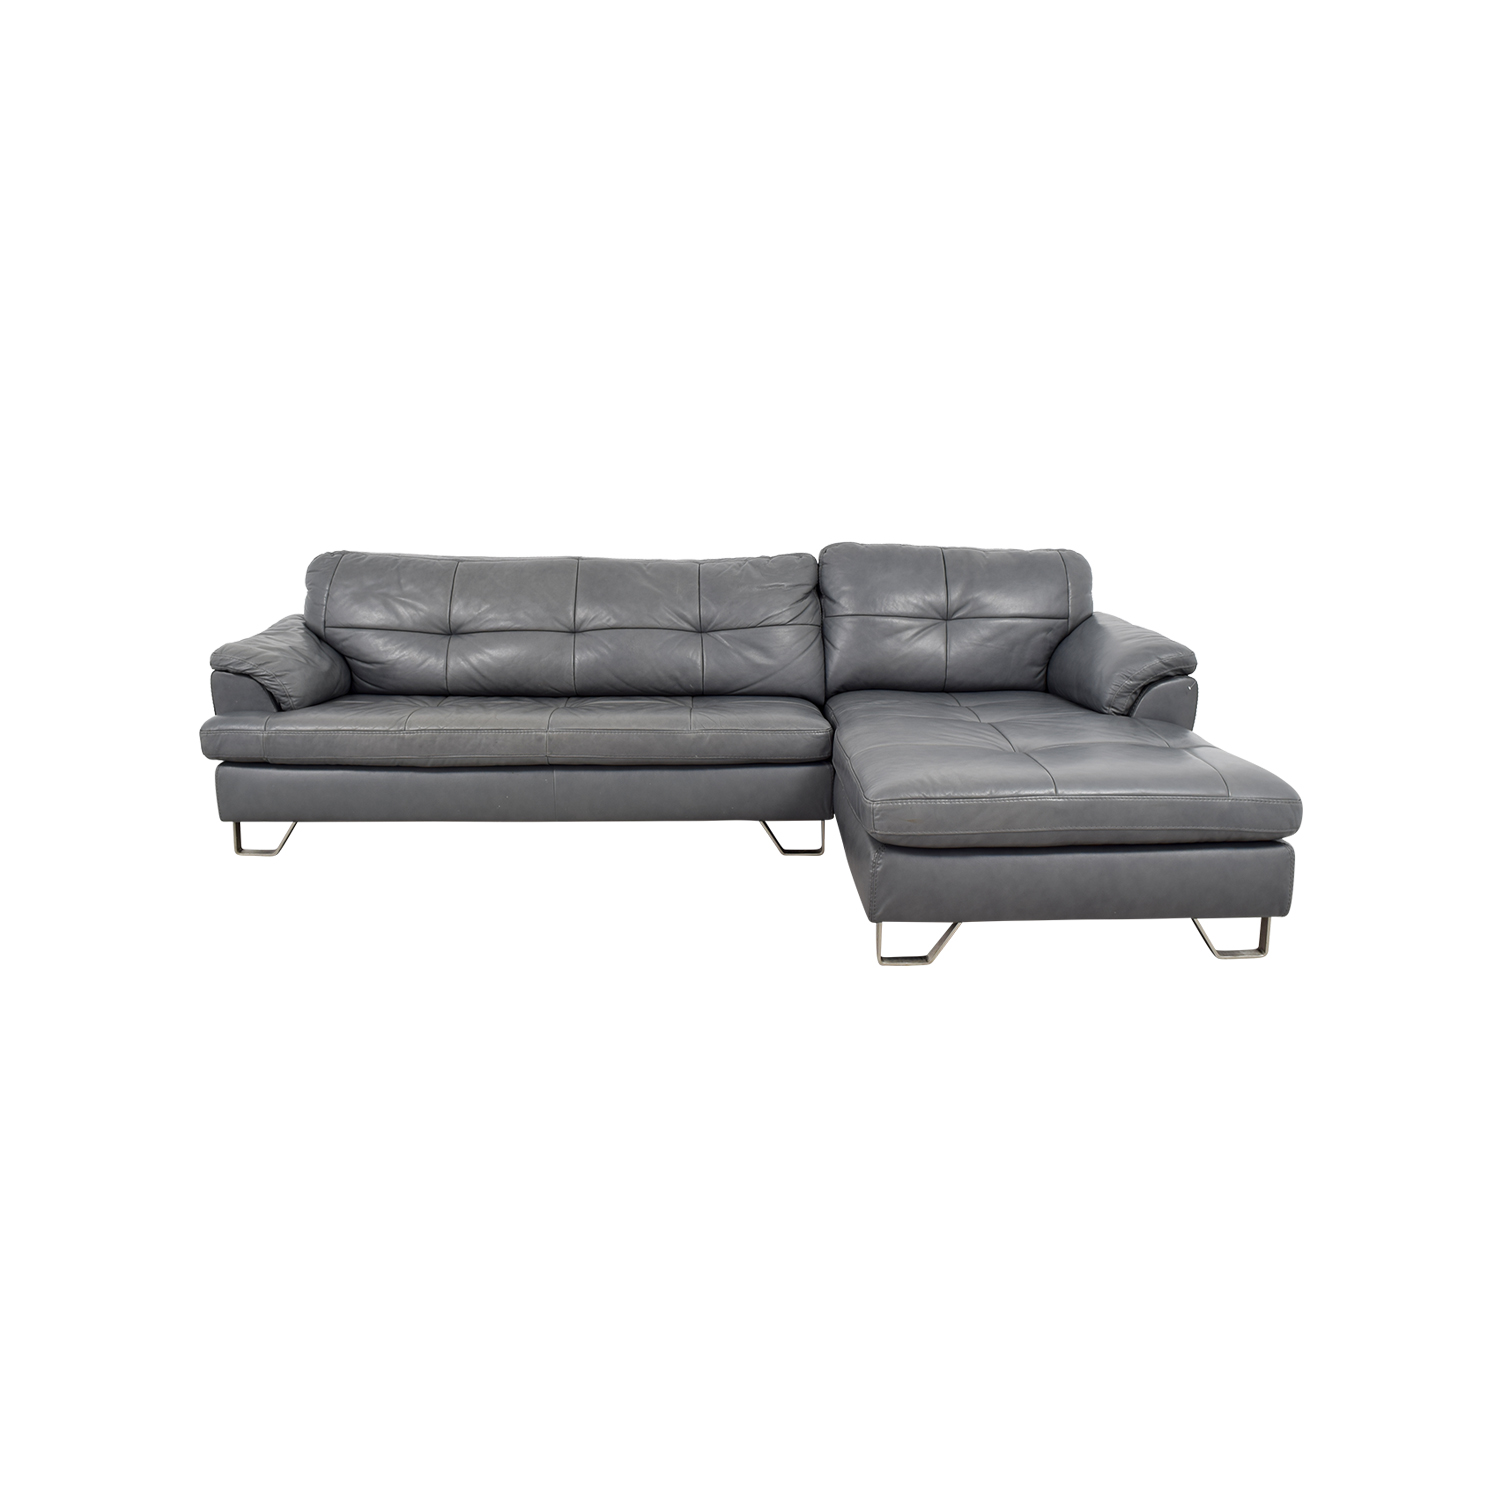 tufted sectionals sofas velvet chesterfield style sofa 83 off ashley furniture gray